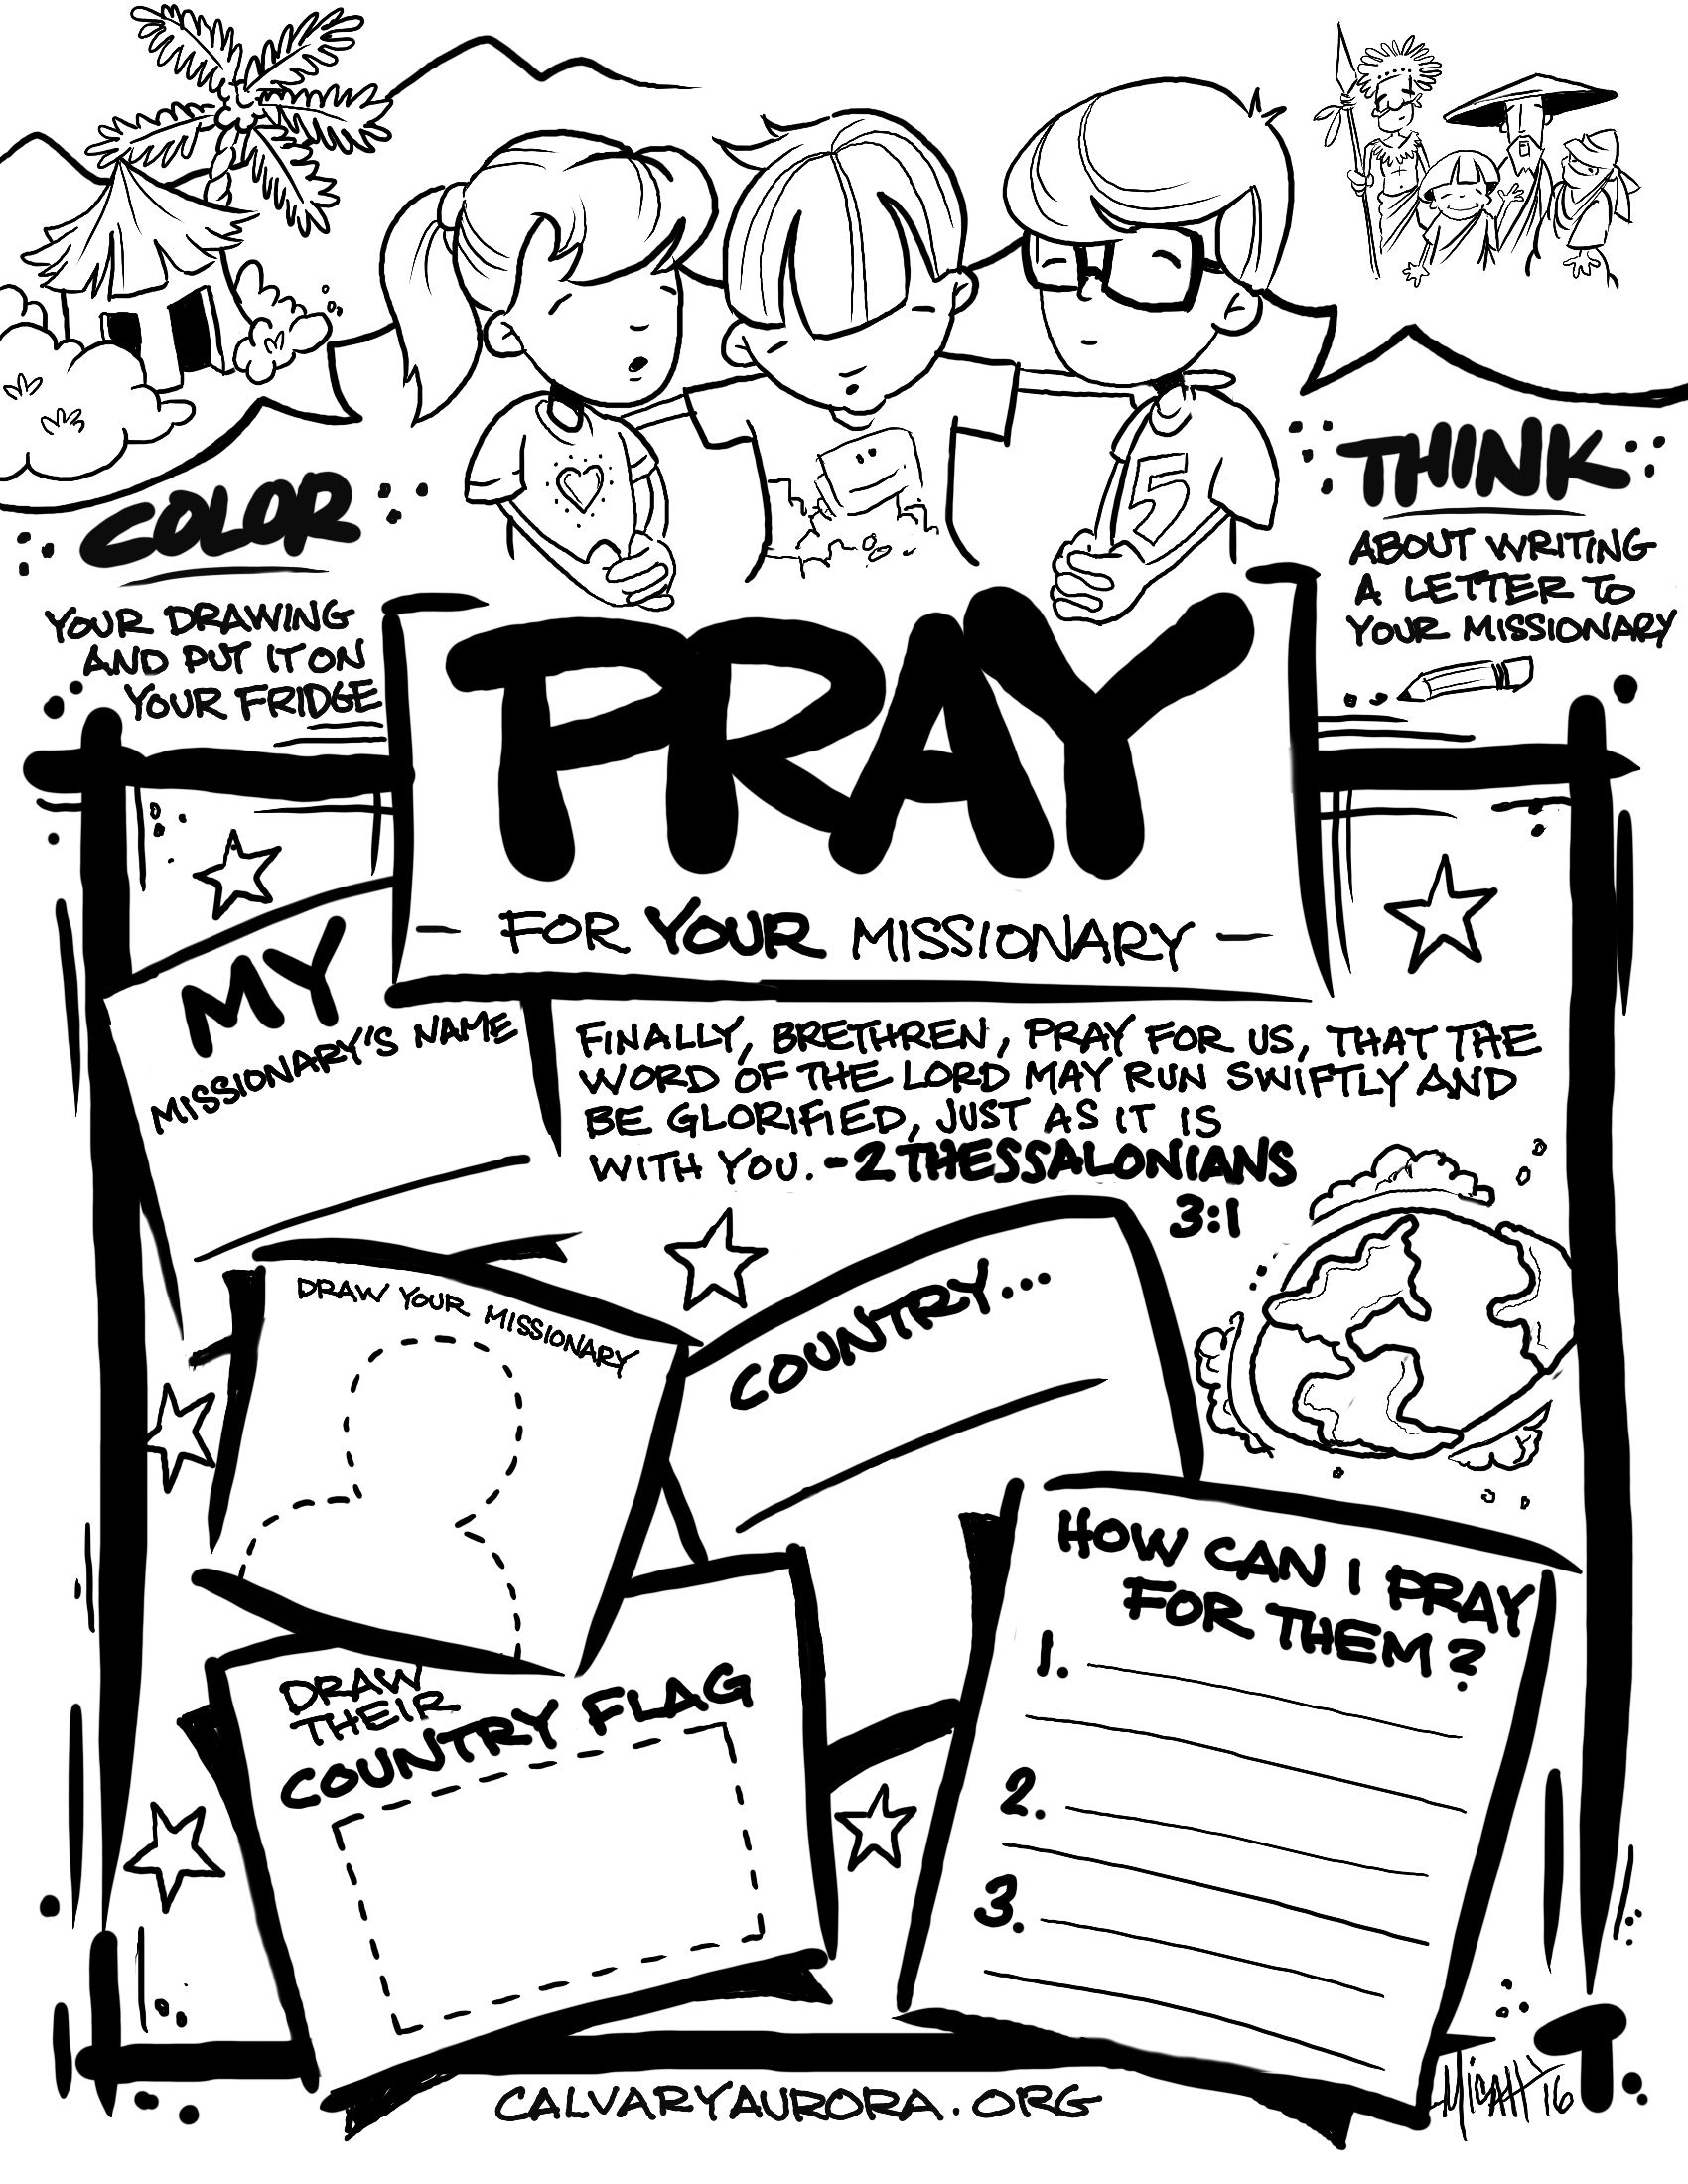 Missionary Prayer Pages For Children